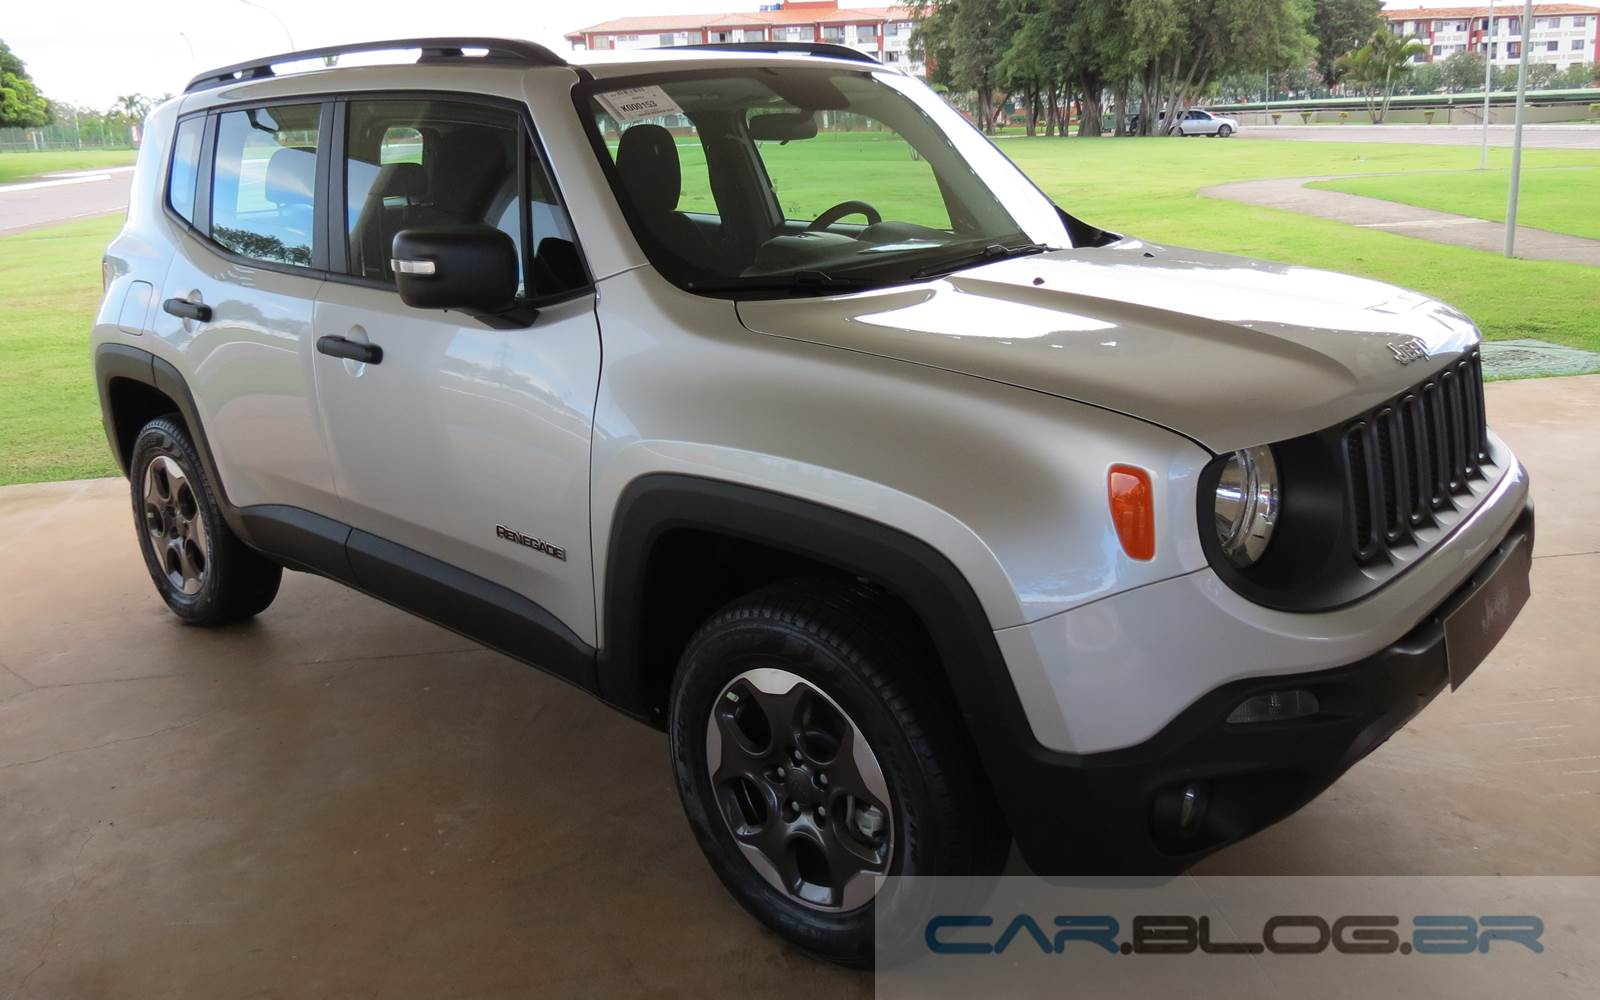 jeep renegade brasil pre os partem de r reais car blog br. Black Bedroom Furniture Sets. Home Design Ideas